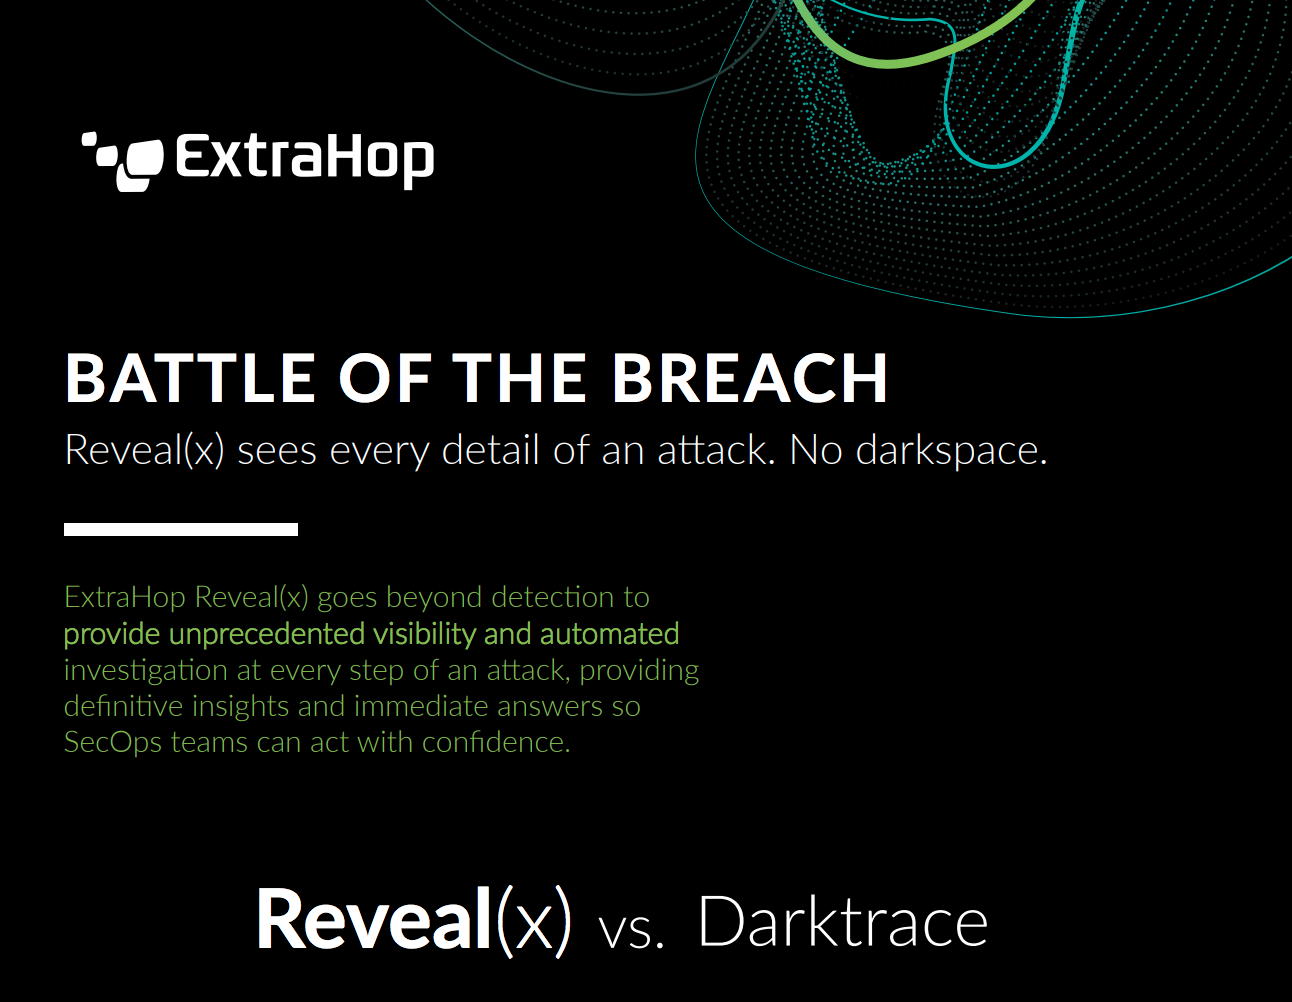 ExtraHop Reveal(x) vs. Darktrace